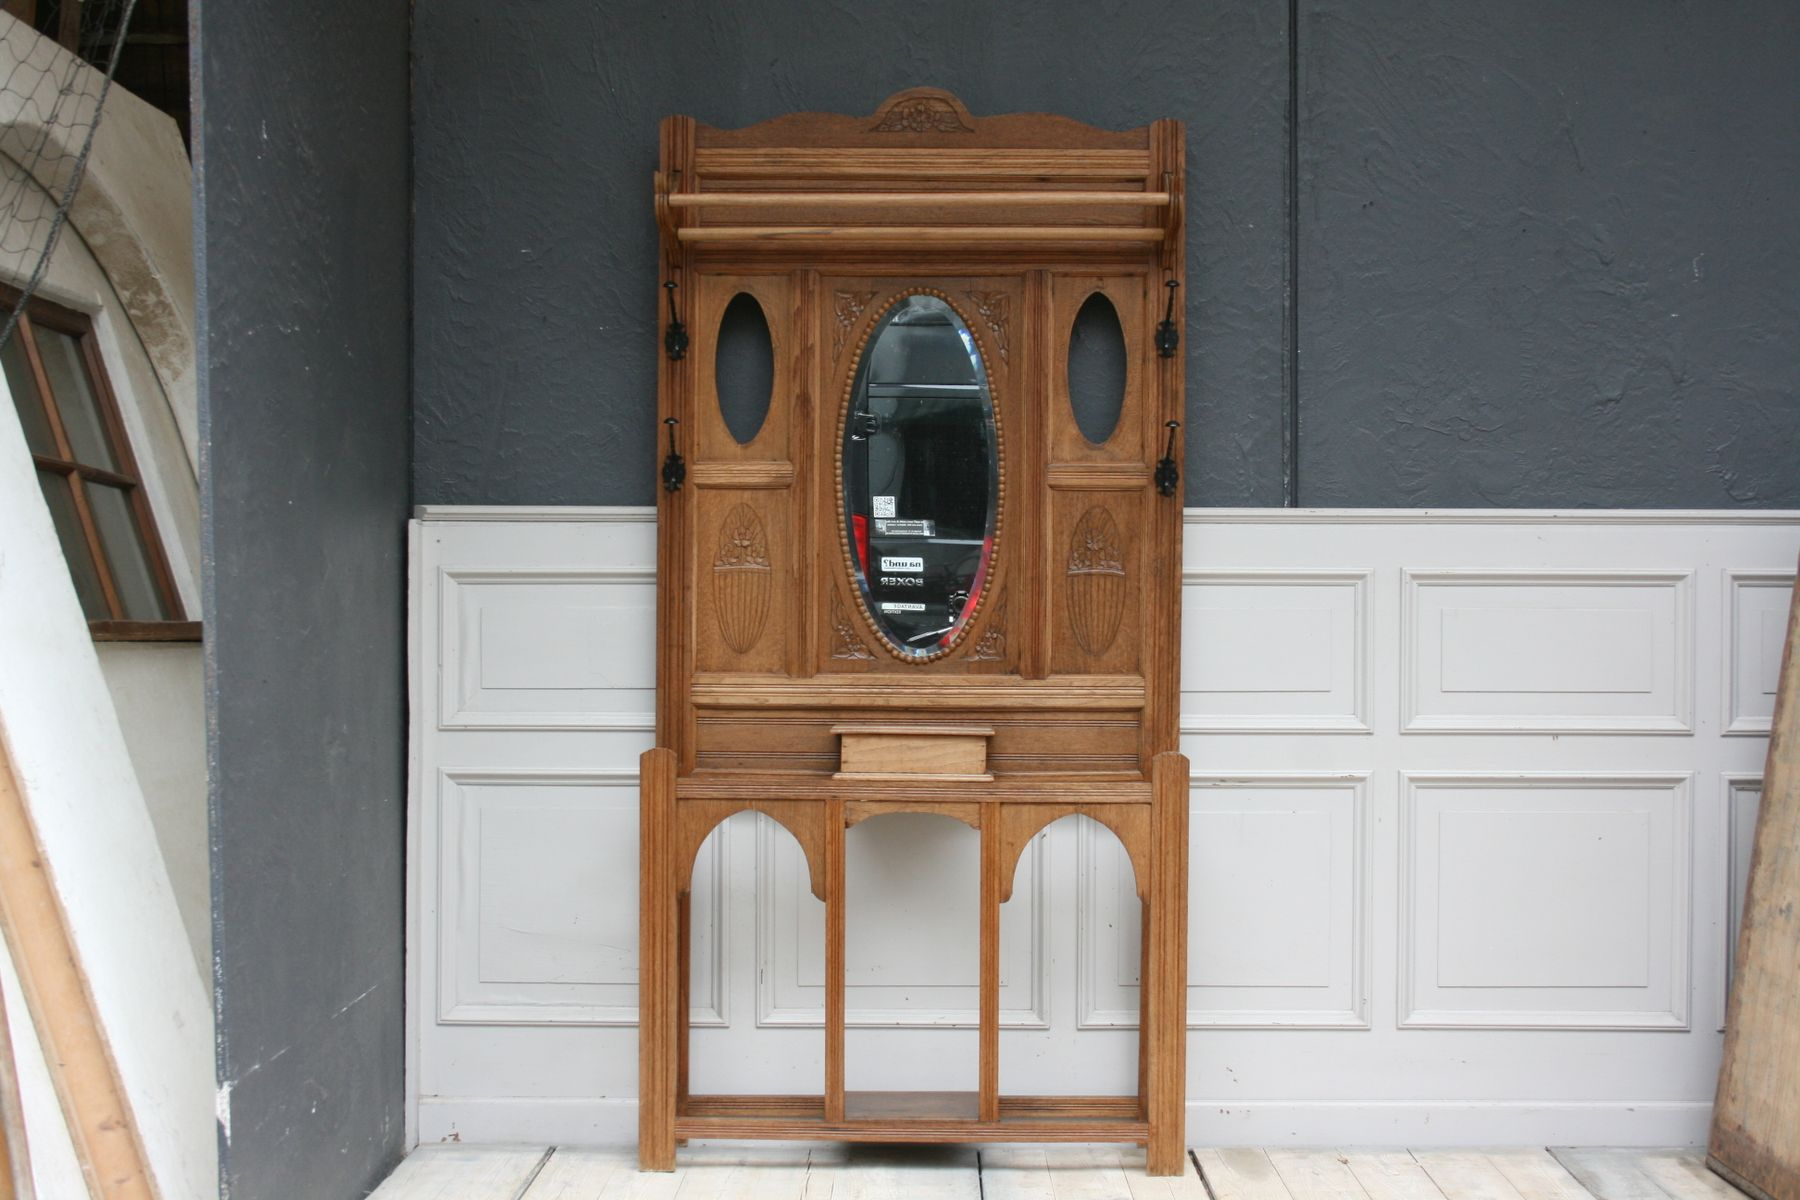 meuble d 39 entr e art nouveau en ch ne belgique 1920s en vente sur pamono. Black Bedroom Furniture Sets. Home Design Ideas